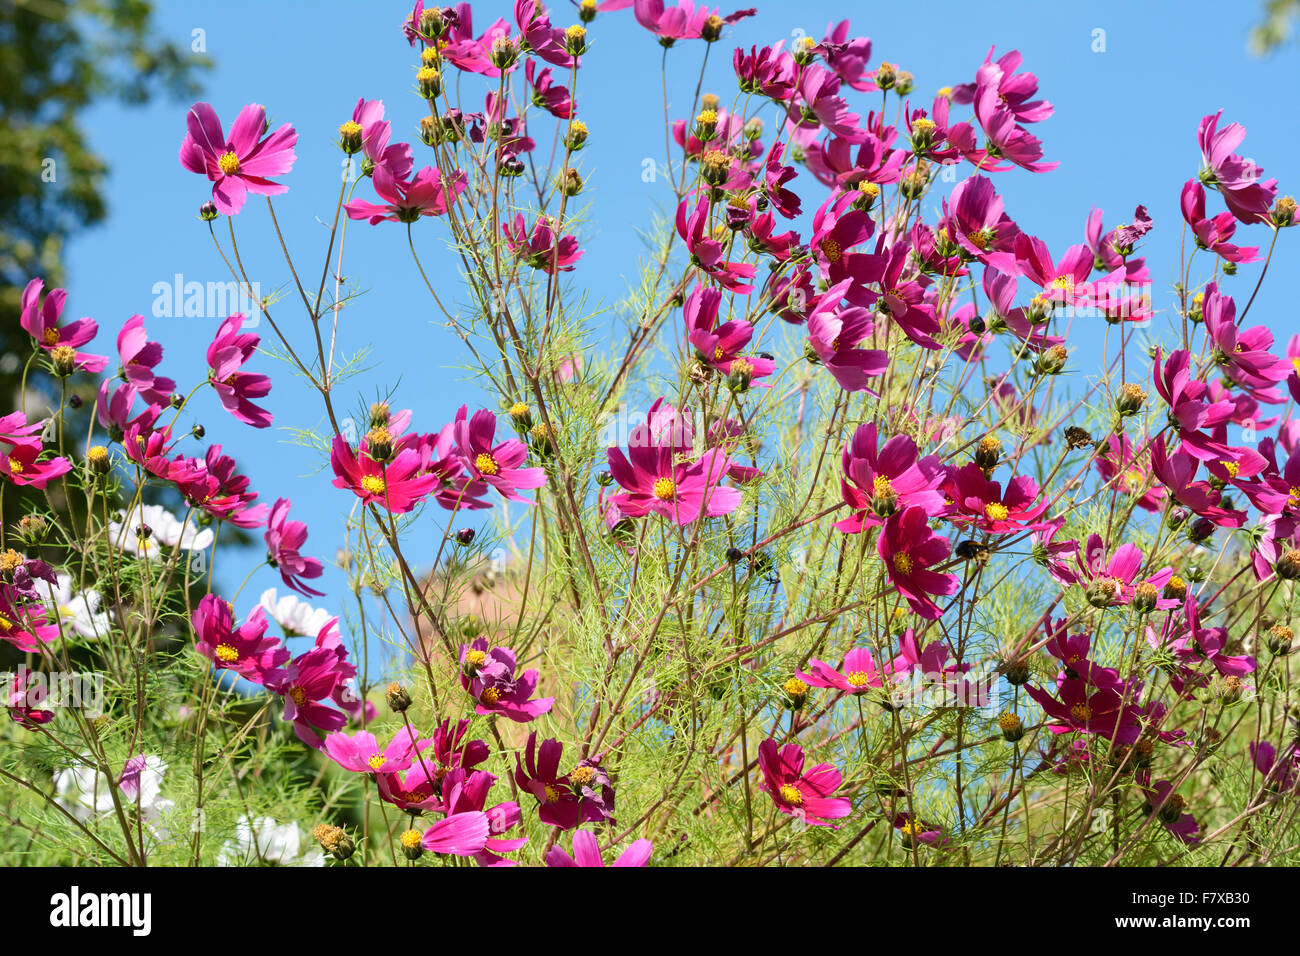 Magenta flowers and green foliage contrasting against a deep blue sky. - Stock Image